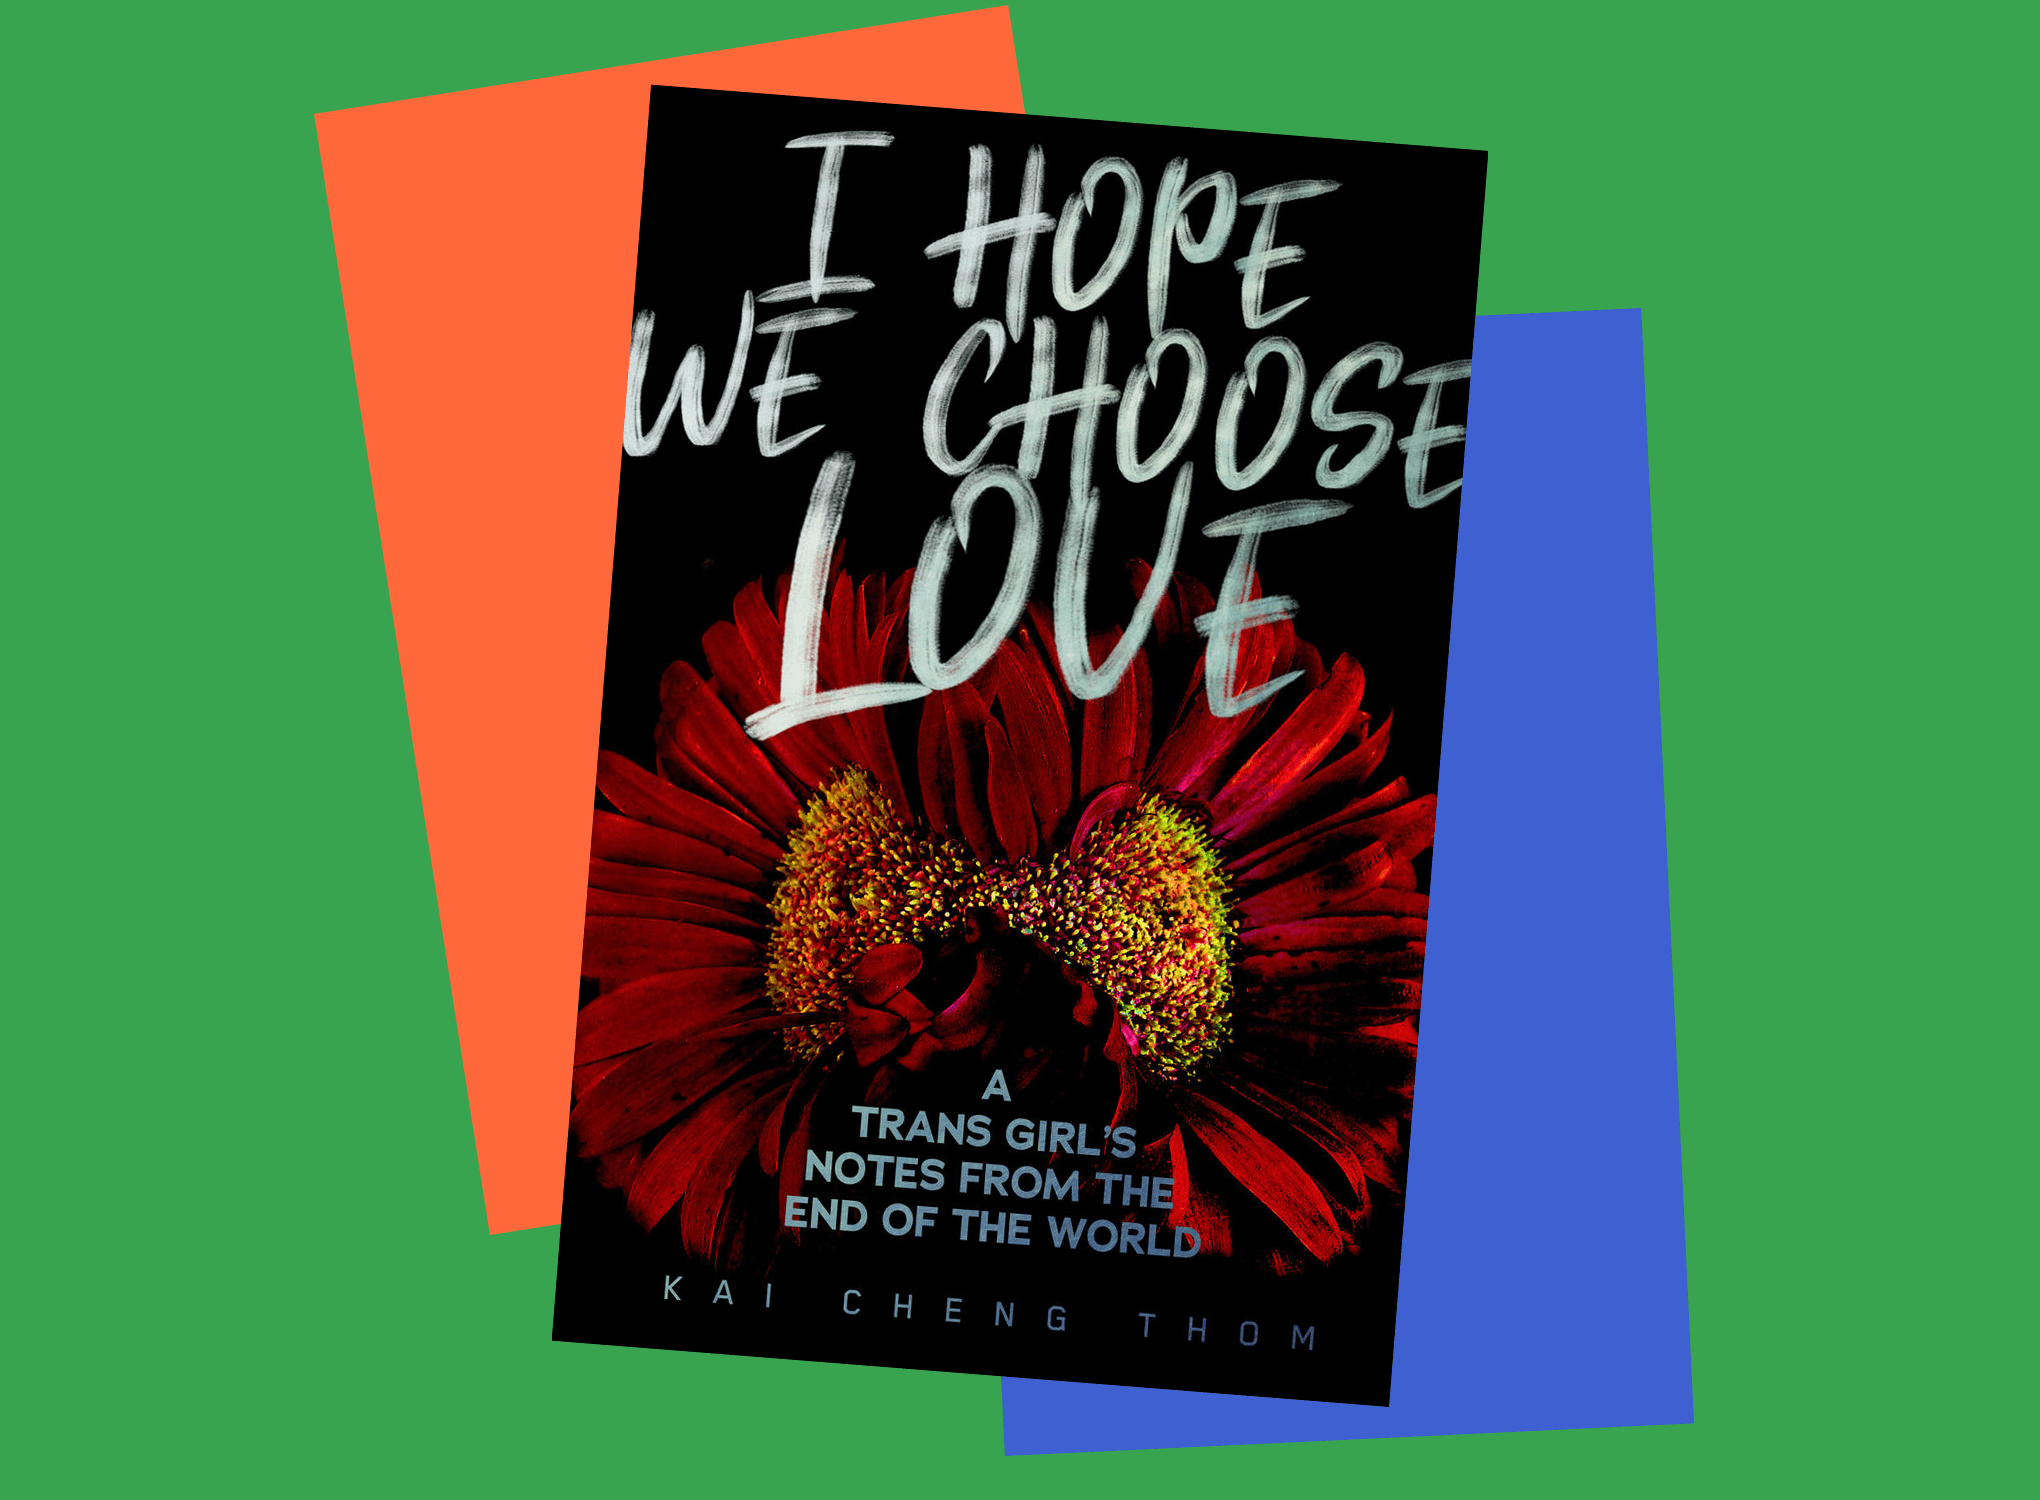 Book jacket cover for I Hope We Choose Love by Kai Cheng Thom